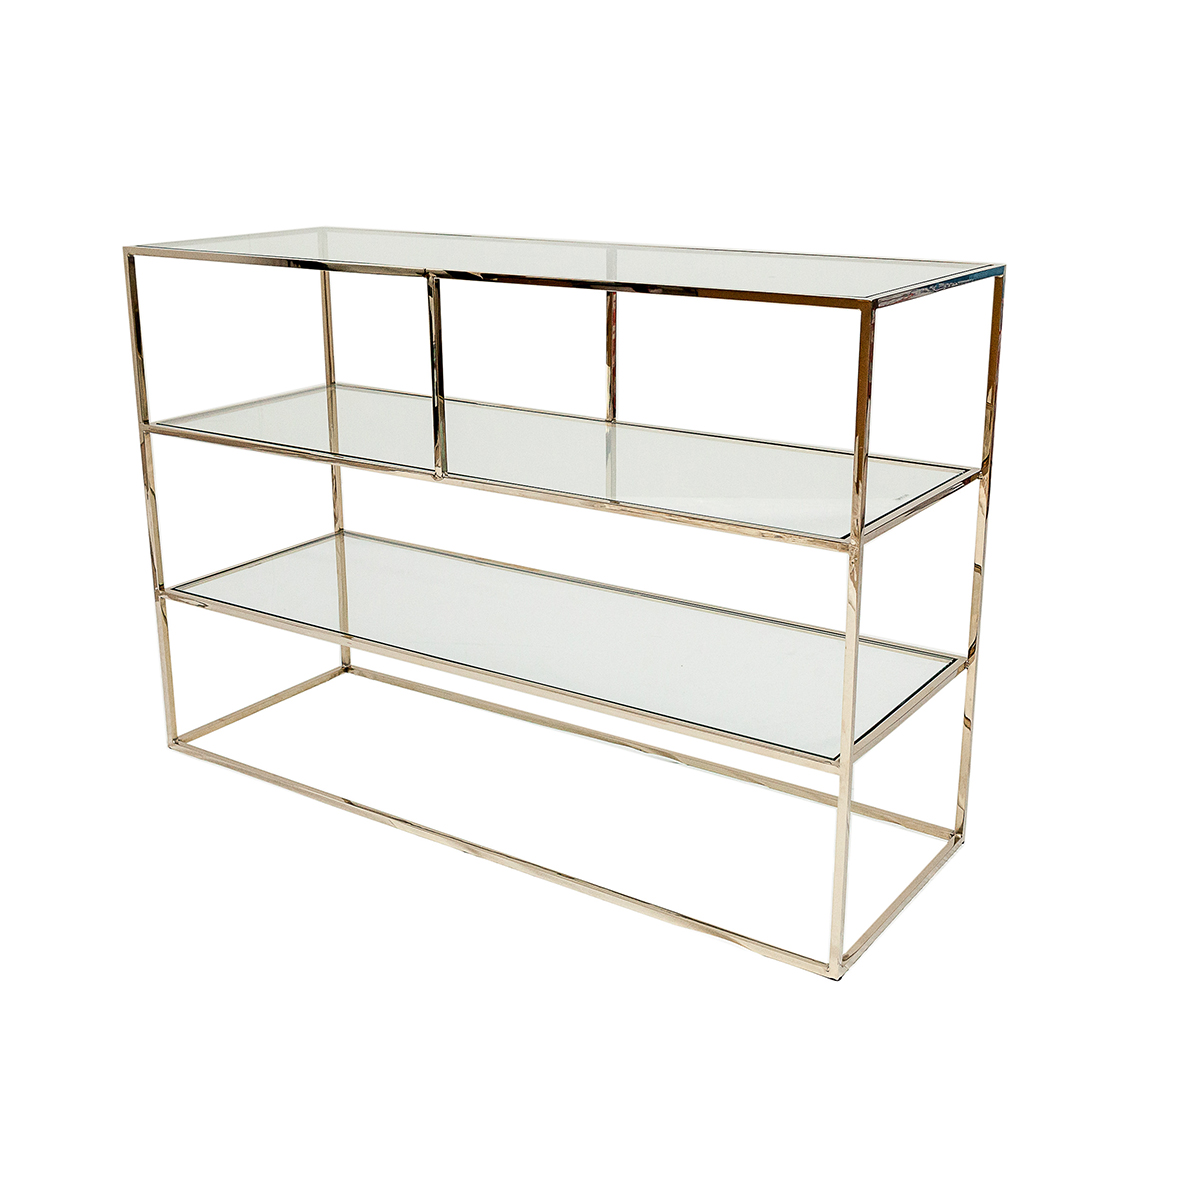 Shelby Console Table – Polerad Mässing